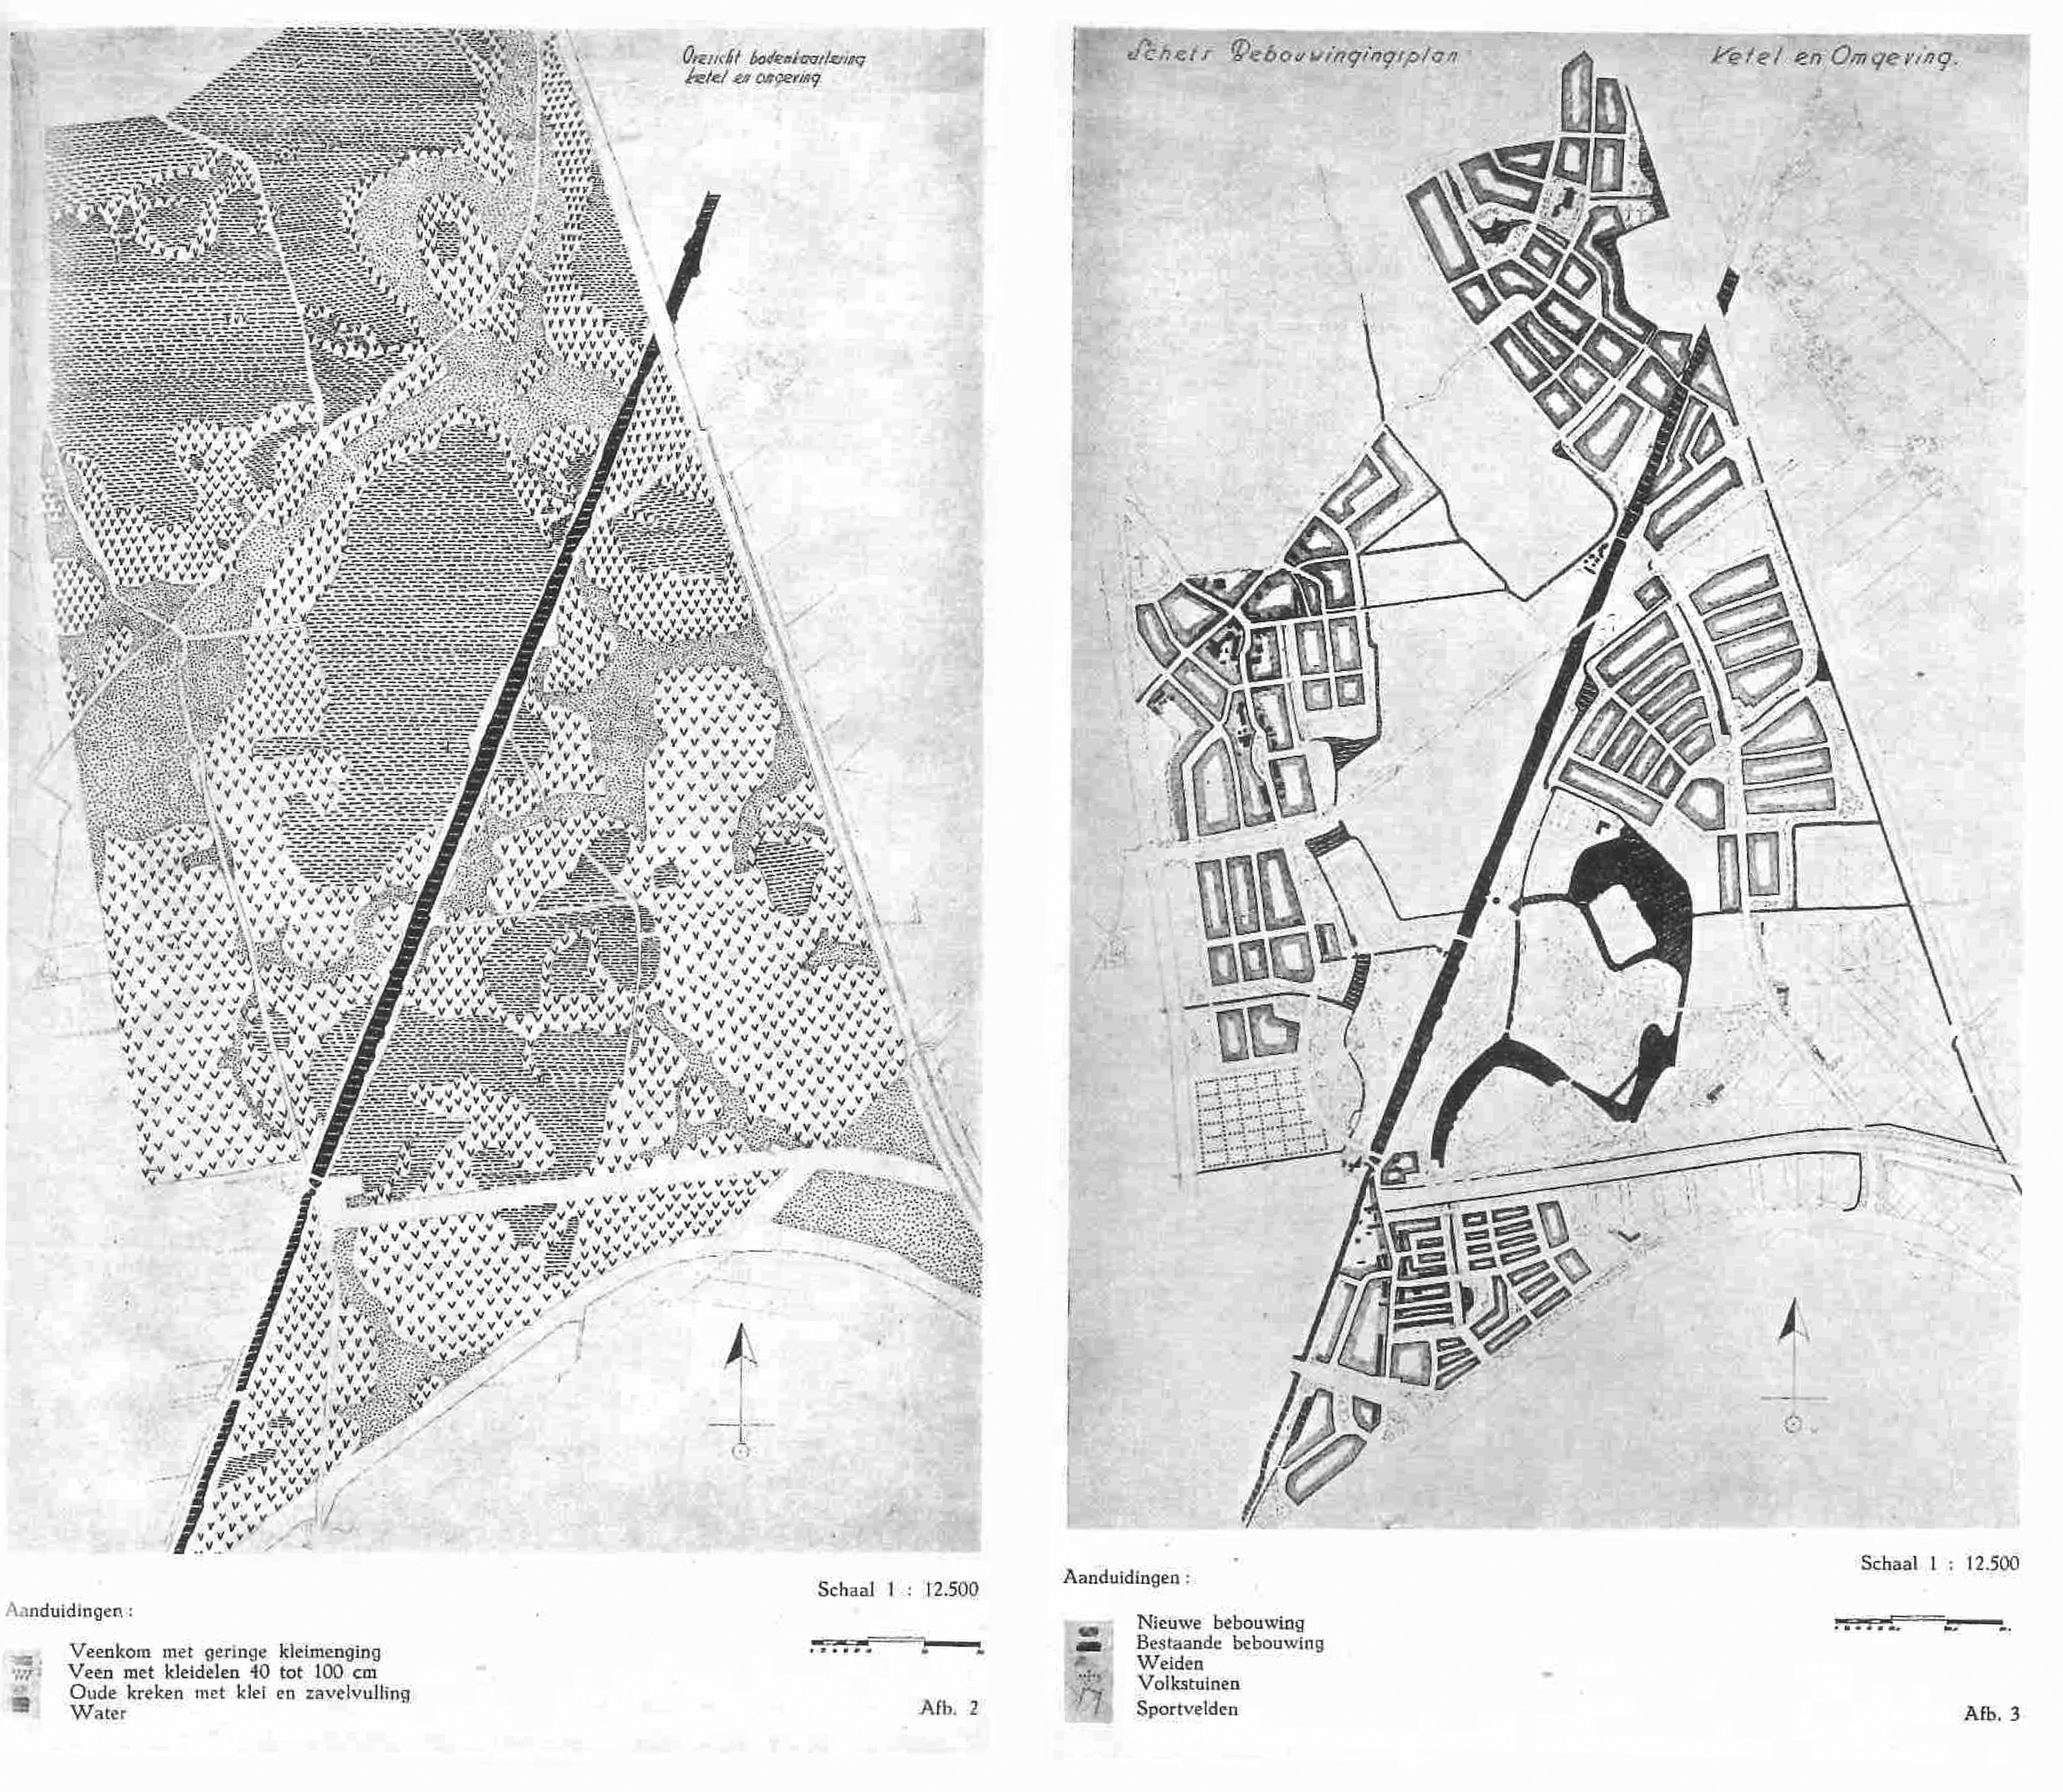 Figure 7. Soilmap and Urban development plan for greentown Kethel (Schiedam) by Bijhouwer. Source: Bijhouwer, 1947.